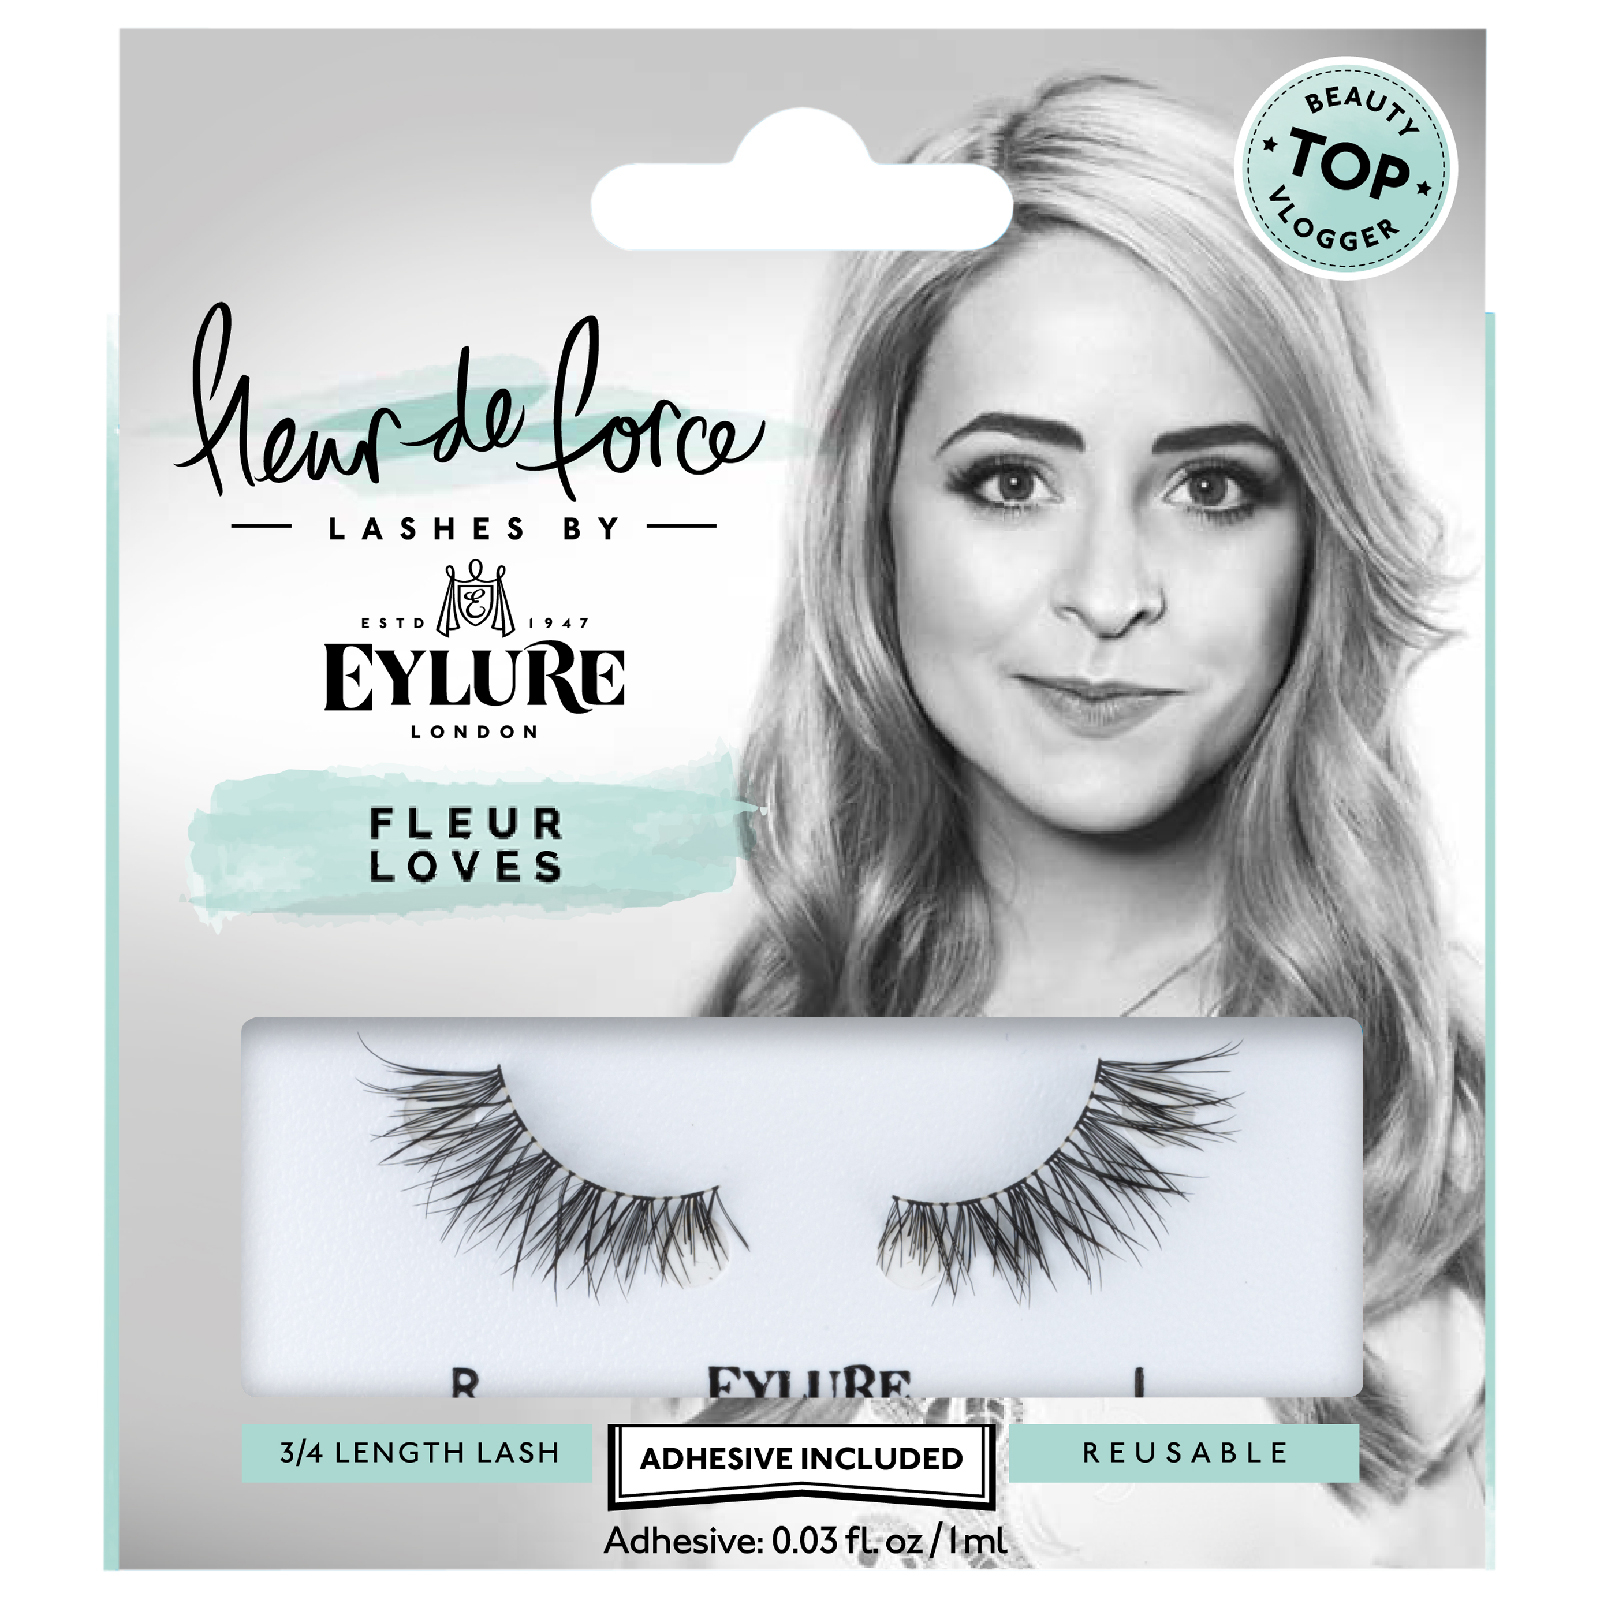 c0b52fbcdd7 Fleur de Force By Eylure Lashes - Fleur Loves | Free Shipping |  Lookfantastic